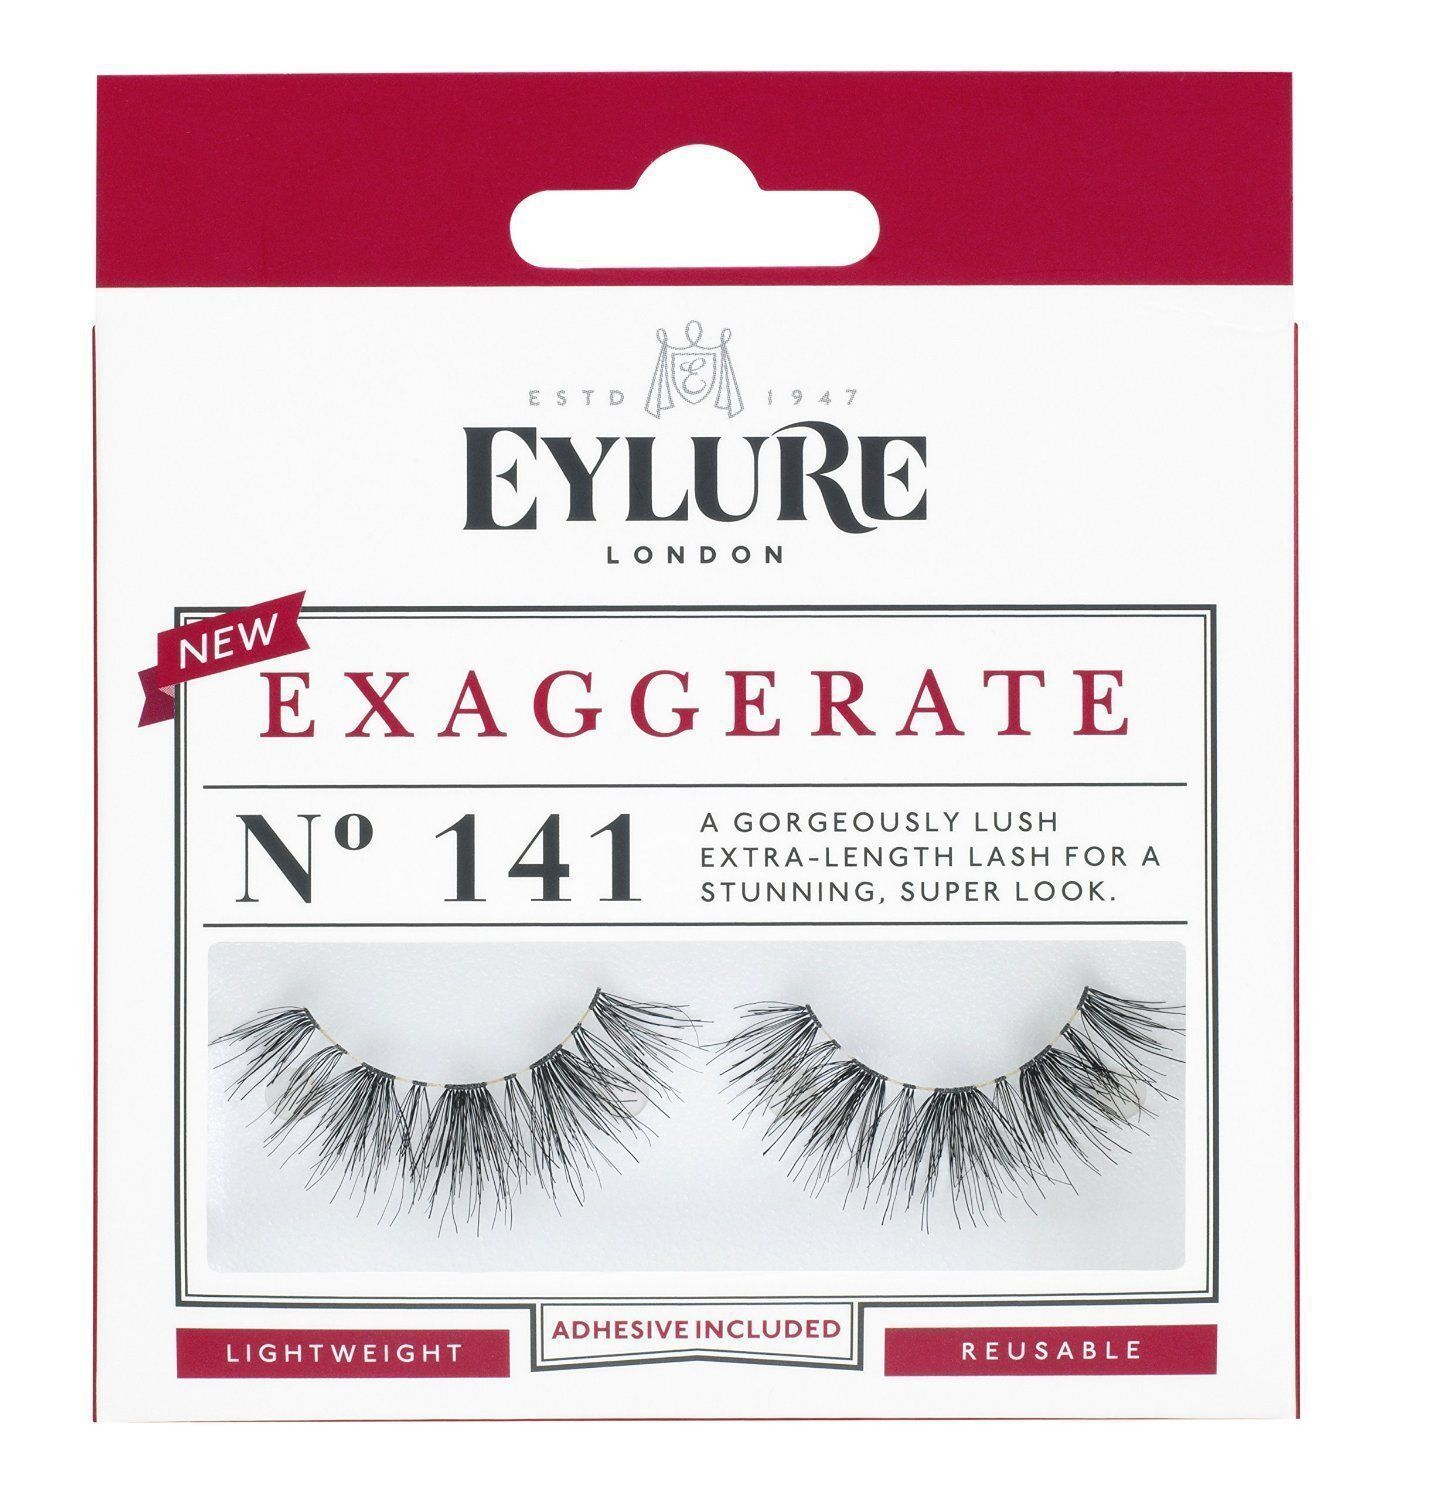 0e7328c5900 EYLURE Strip Lashes Exaggerate Number 141 for sale online | eBay